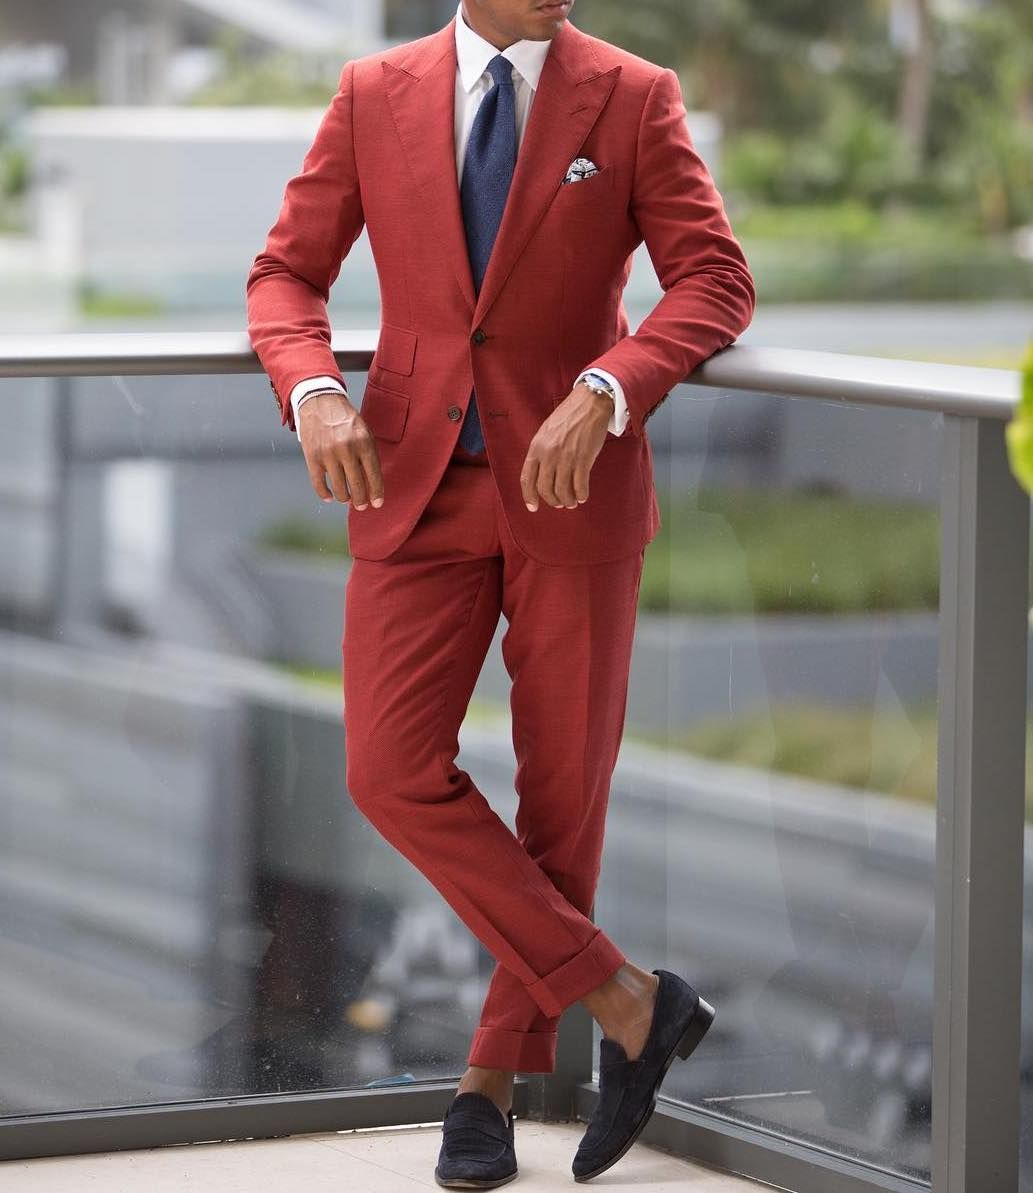 Daring Burgundy Red Two Pieces Suits Dressing Like A True Gentleman Is Not Only About Fashion But About Self Discipline Ootd Suit Fashion Suits Custom Suit